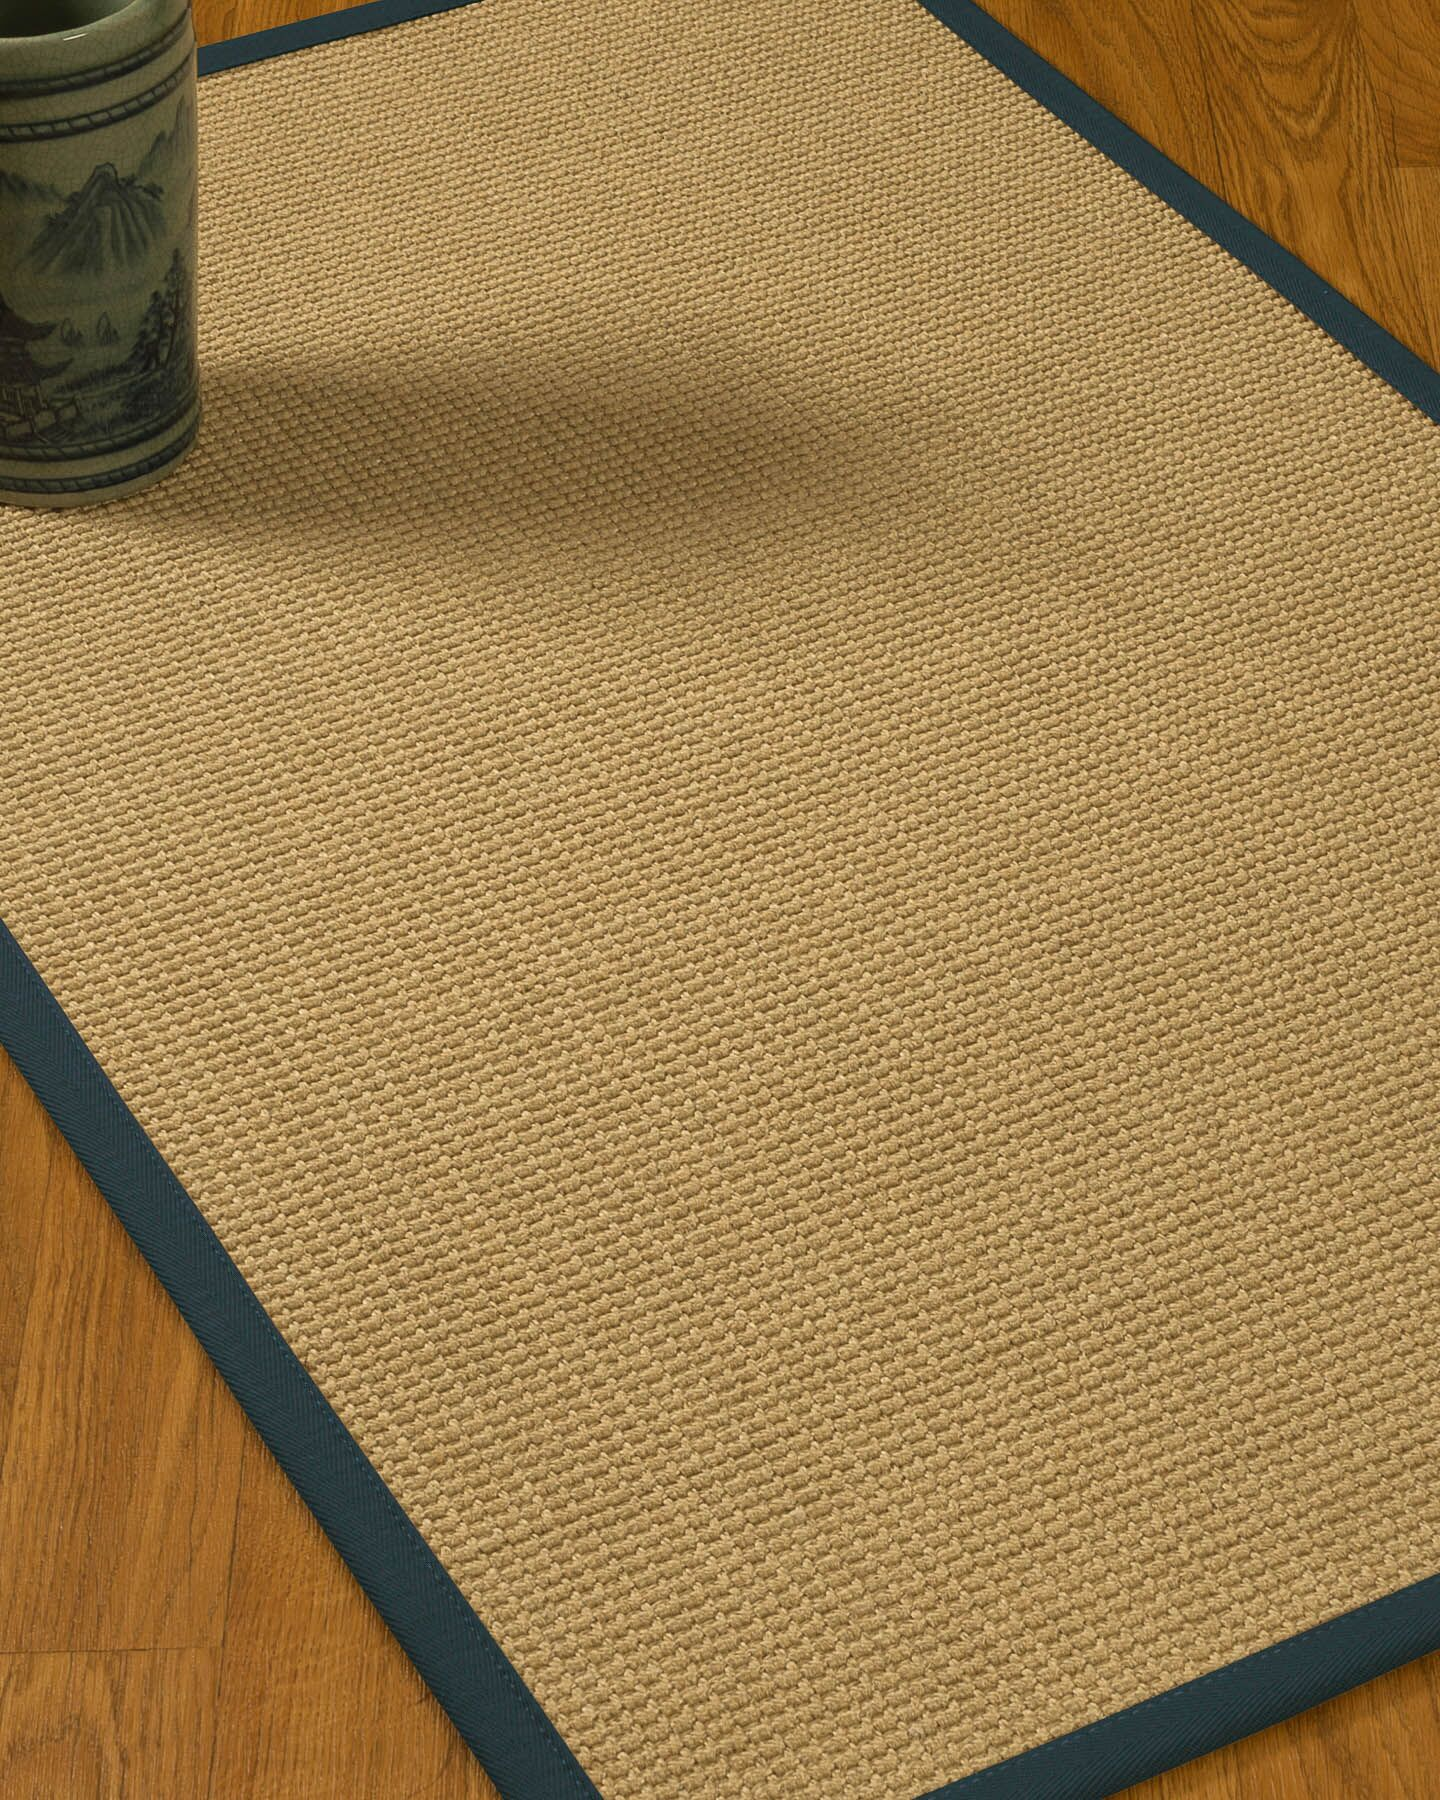 Jacobs Border Hand-Woven Beige/Marine Area Rug Rug Size: Rectangle 5' x 8', Rug Pad Included: Yes